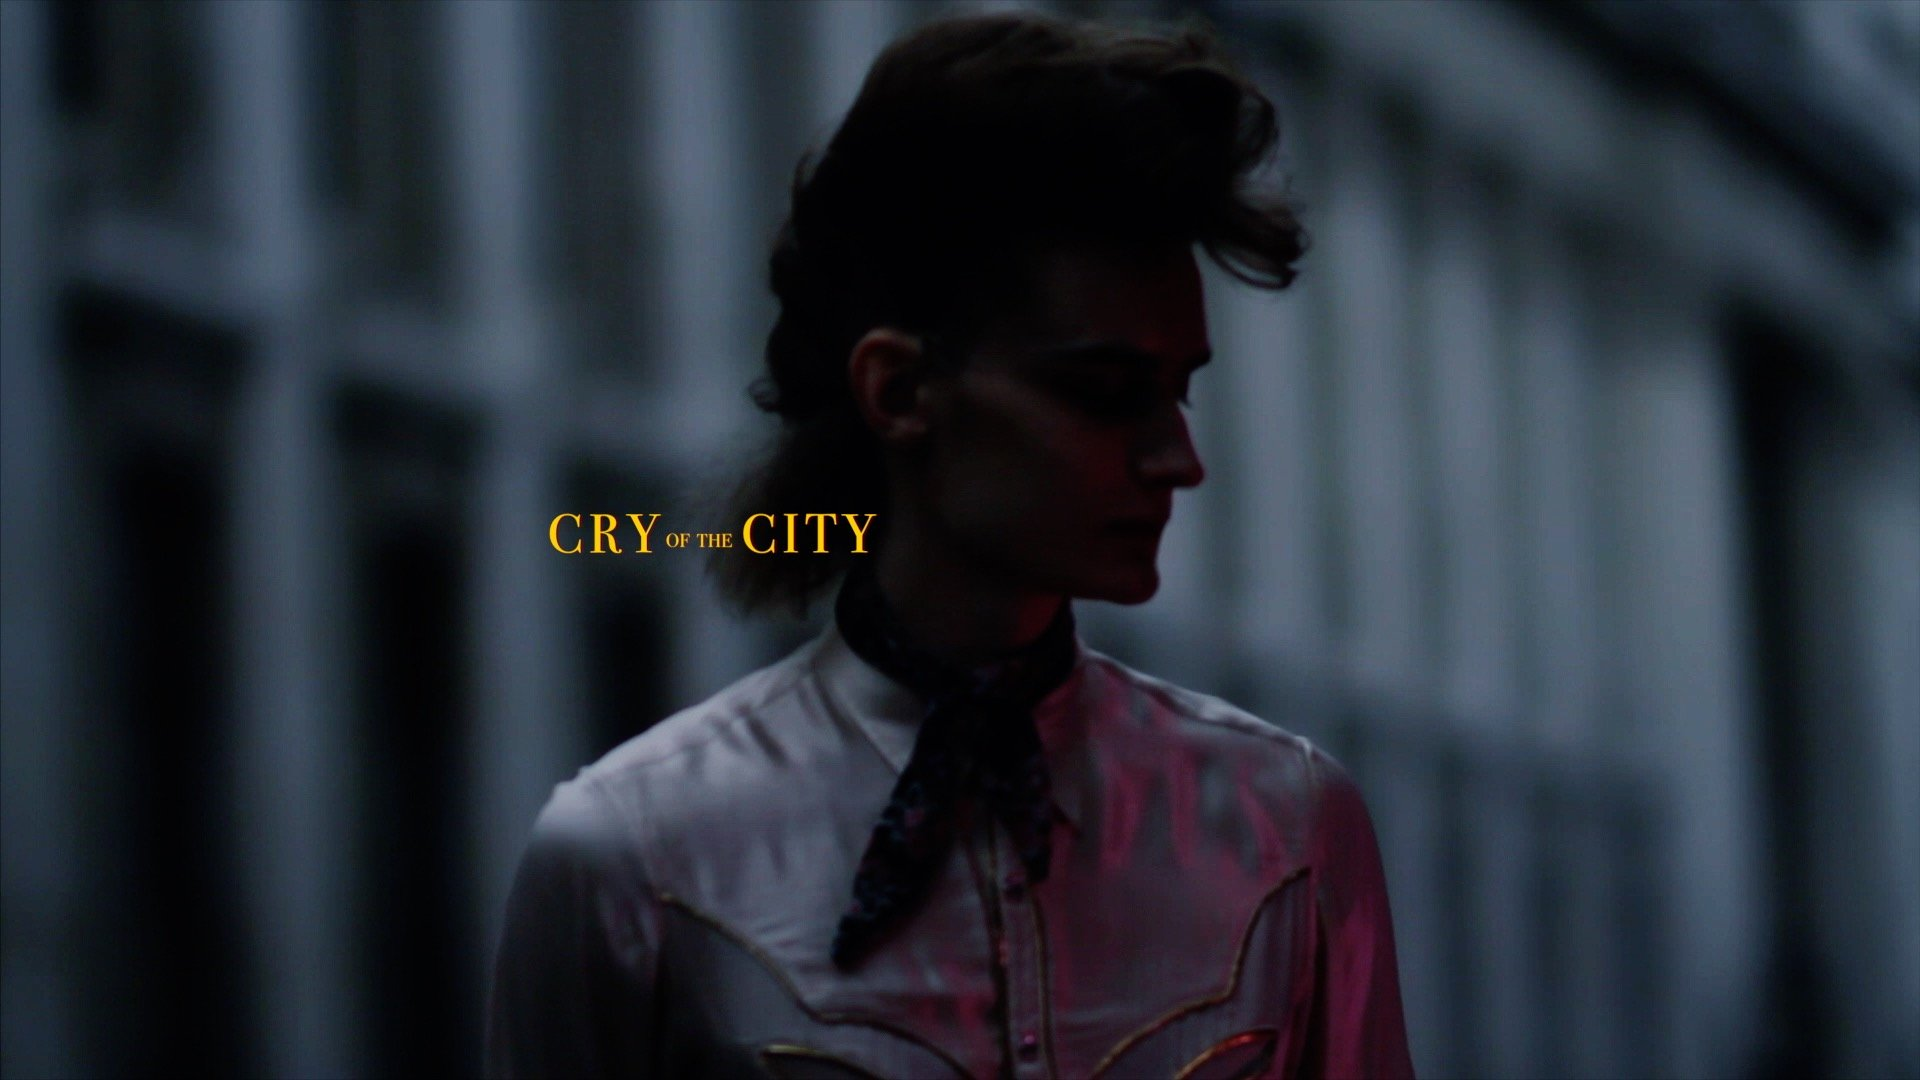 Roma Web Fest - Cry of the City